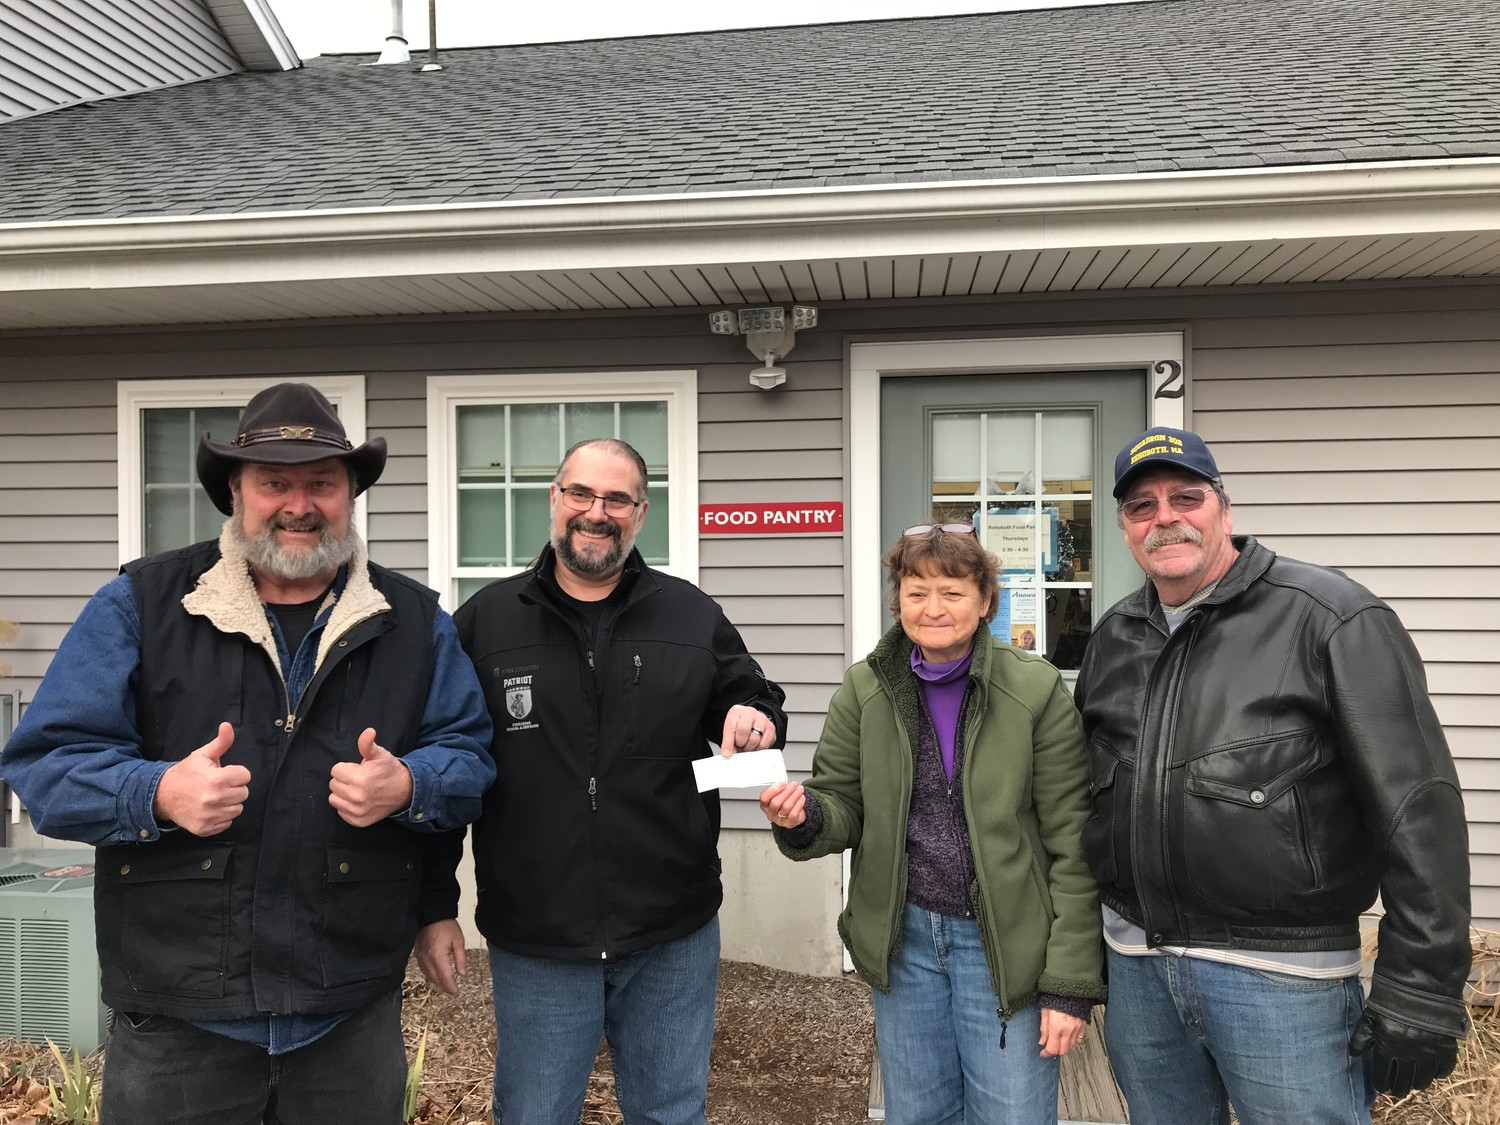 On the left, Mark Hass, the Commander of Sons of American Legion Post 302 along with the Vice Commander of the Sons on the far right, handing checks to Bill Dalape & Paula Fernandes of the Rehoboth Food Pantry December 20th in time for Christmas and the Holidays.